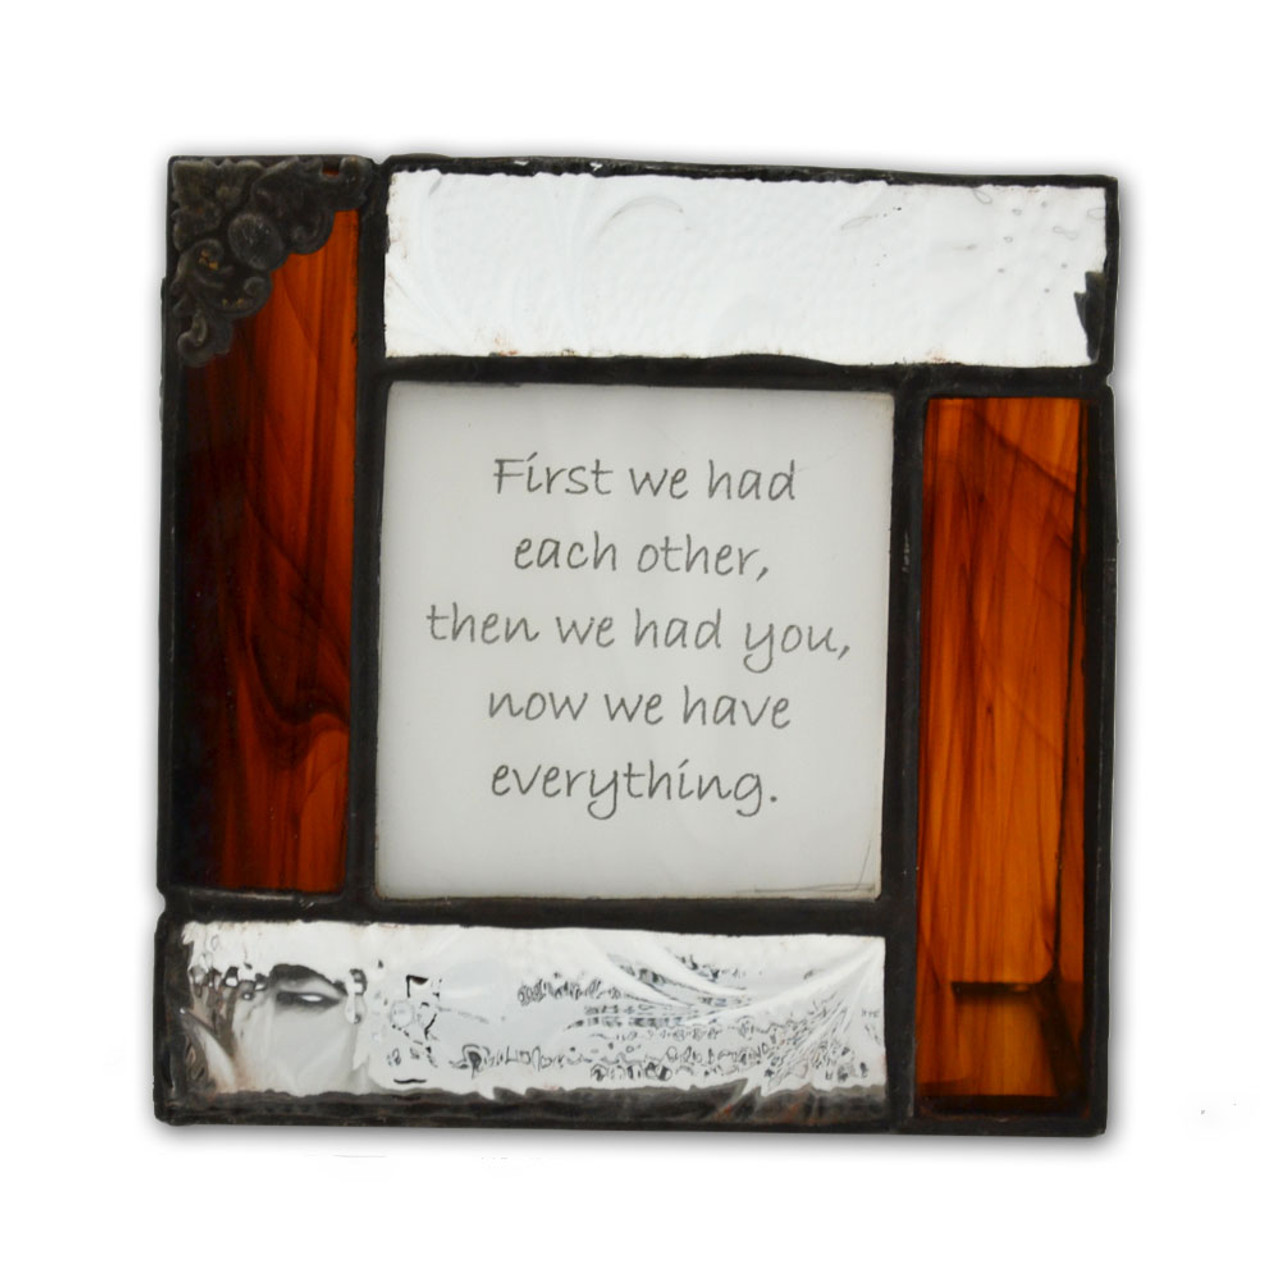 Quotes on Stained Glass